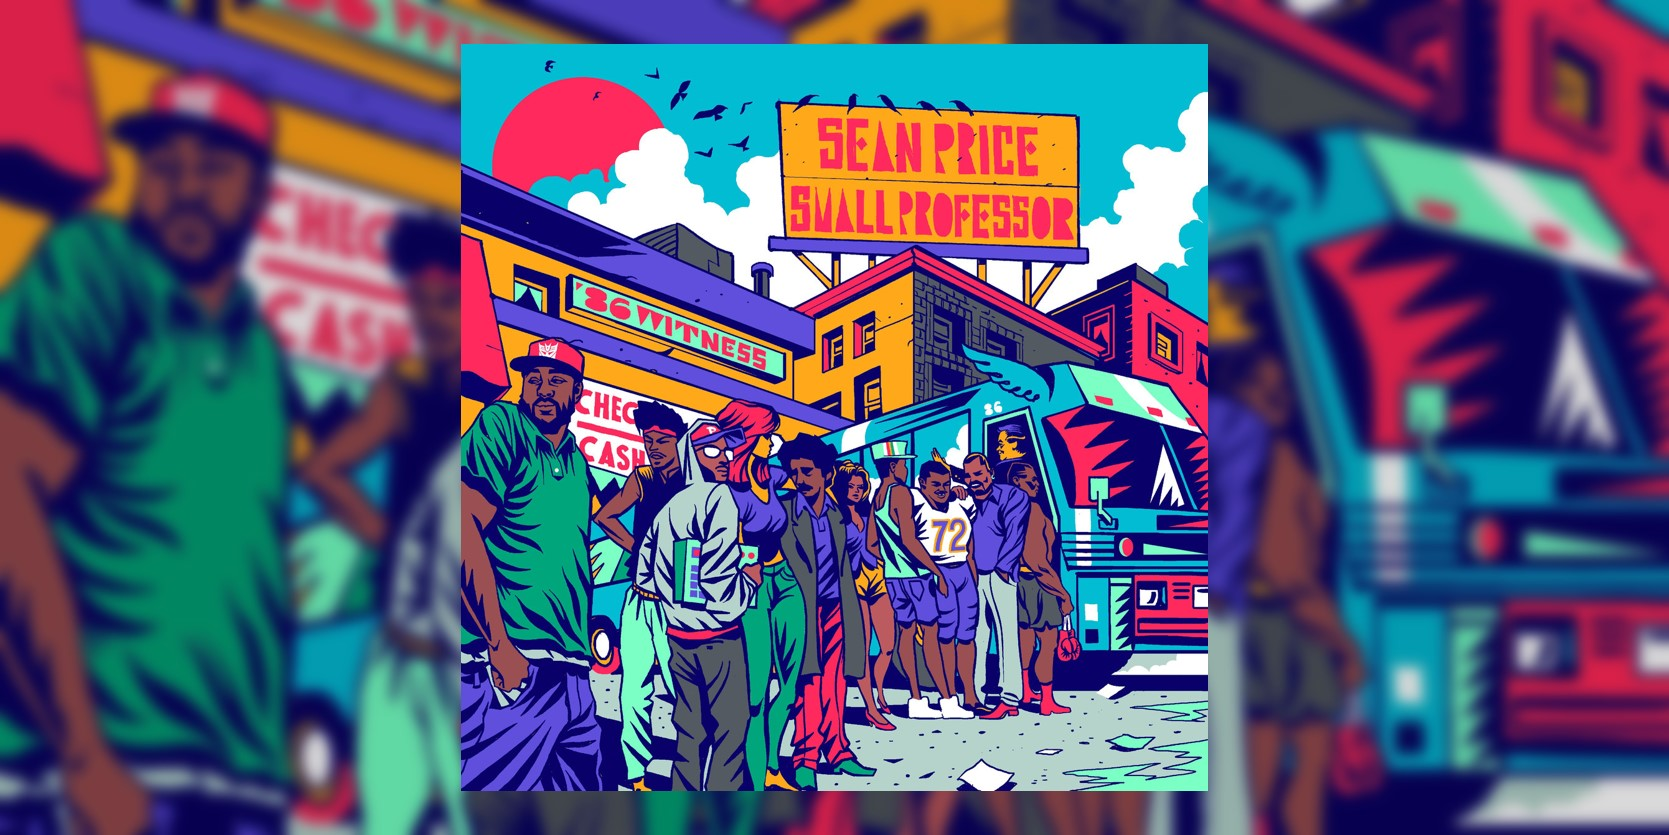 Albumism_SeanPrice_SmallProfessor_86Witness_MainImage.jpg